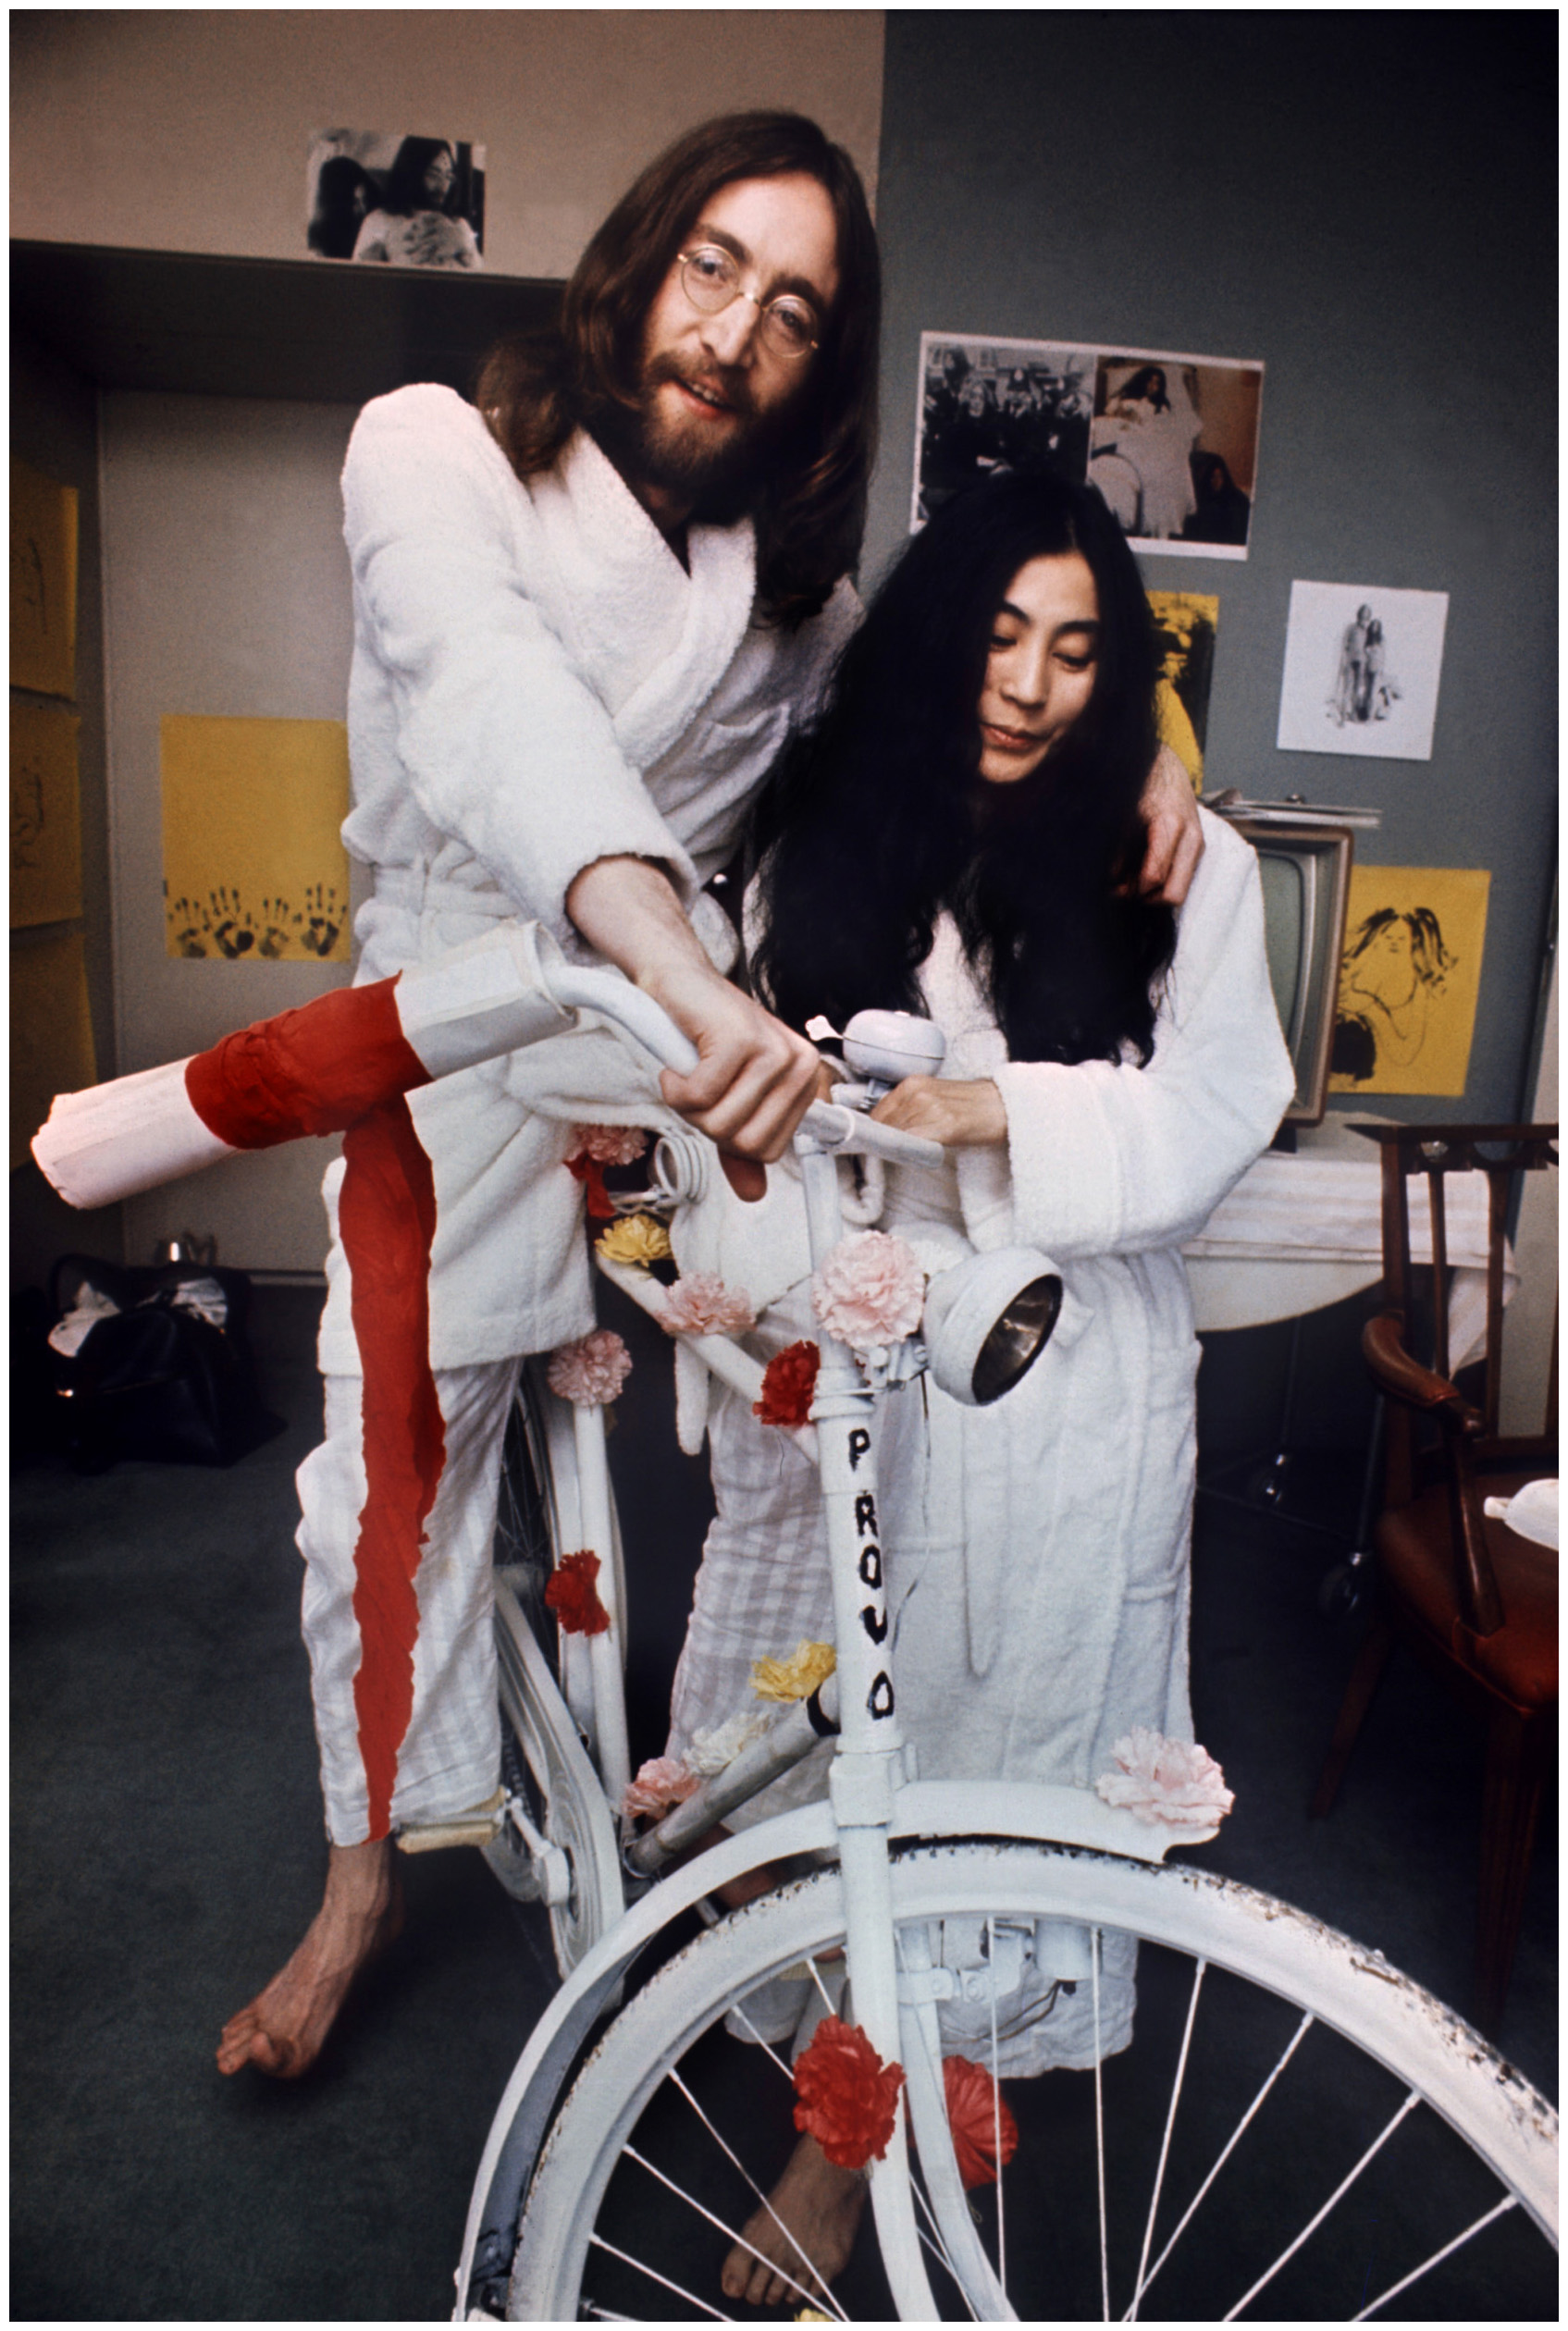 John Lennon and Yoko Ono with on of the earliest share bikes, the white bicycles, during their famous bed in protest in Amsterdam in March 1969 - John and Yoko area a surprising part of the history of car sharing